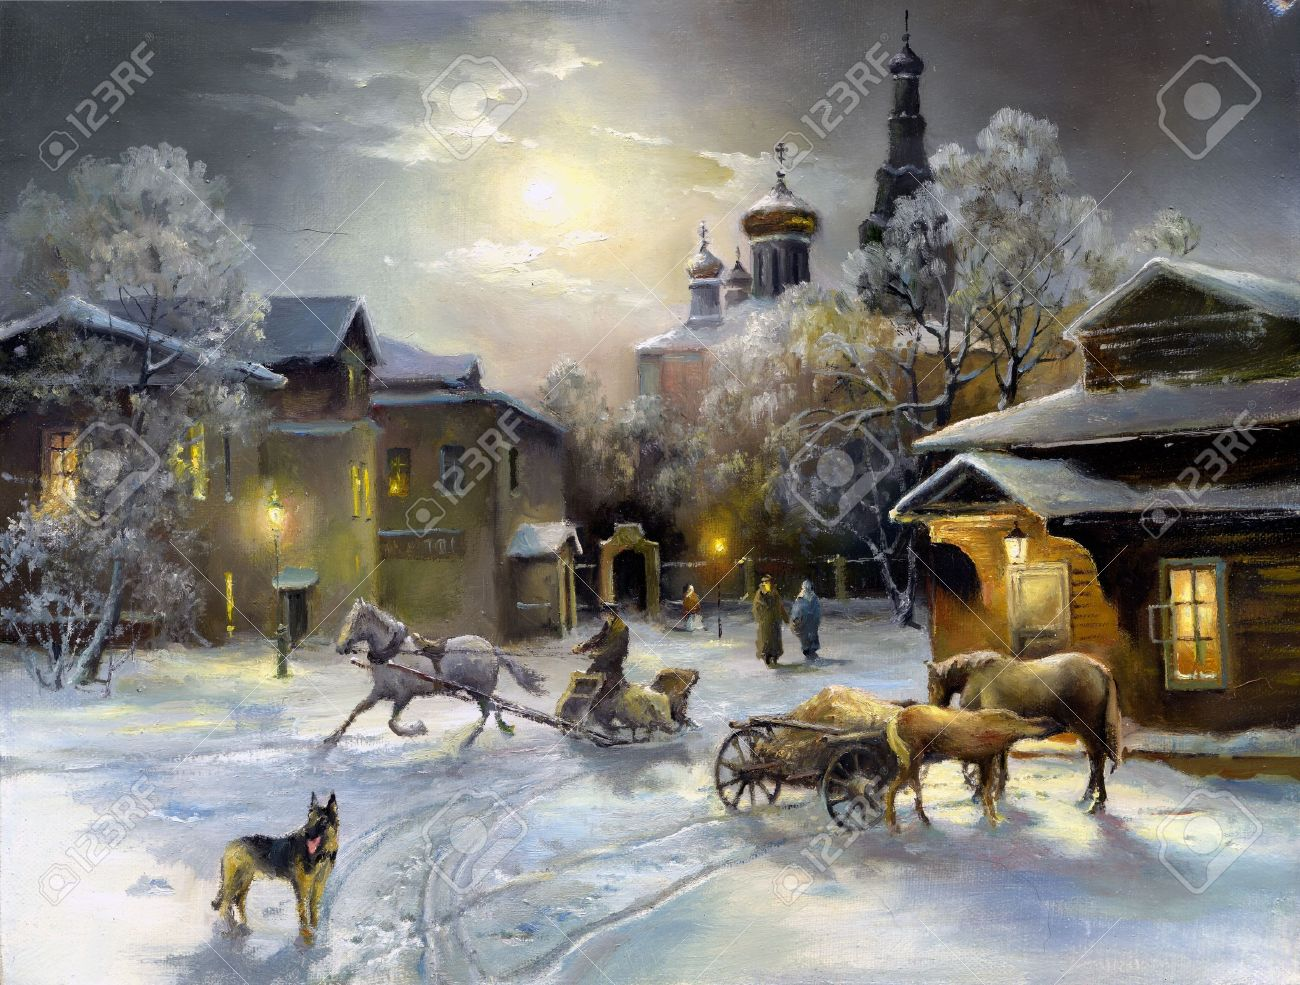 Rural landscape, oil on a canvas Stock Photo - 11012067